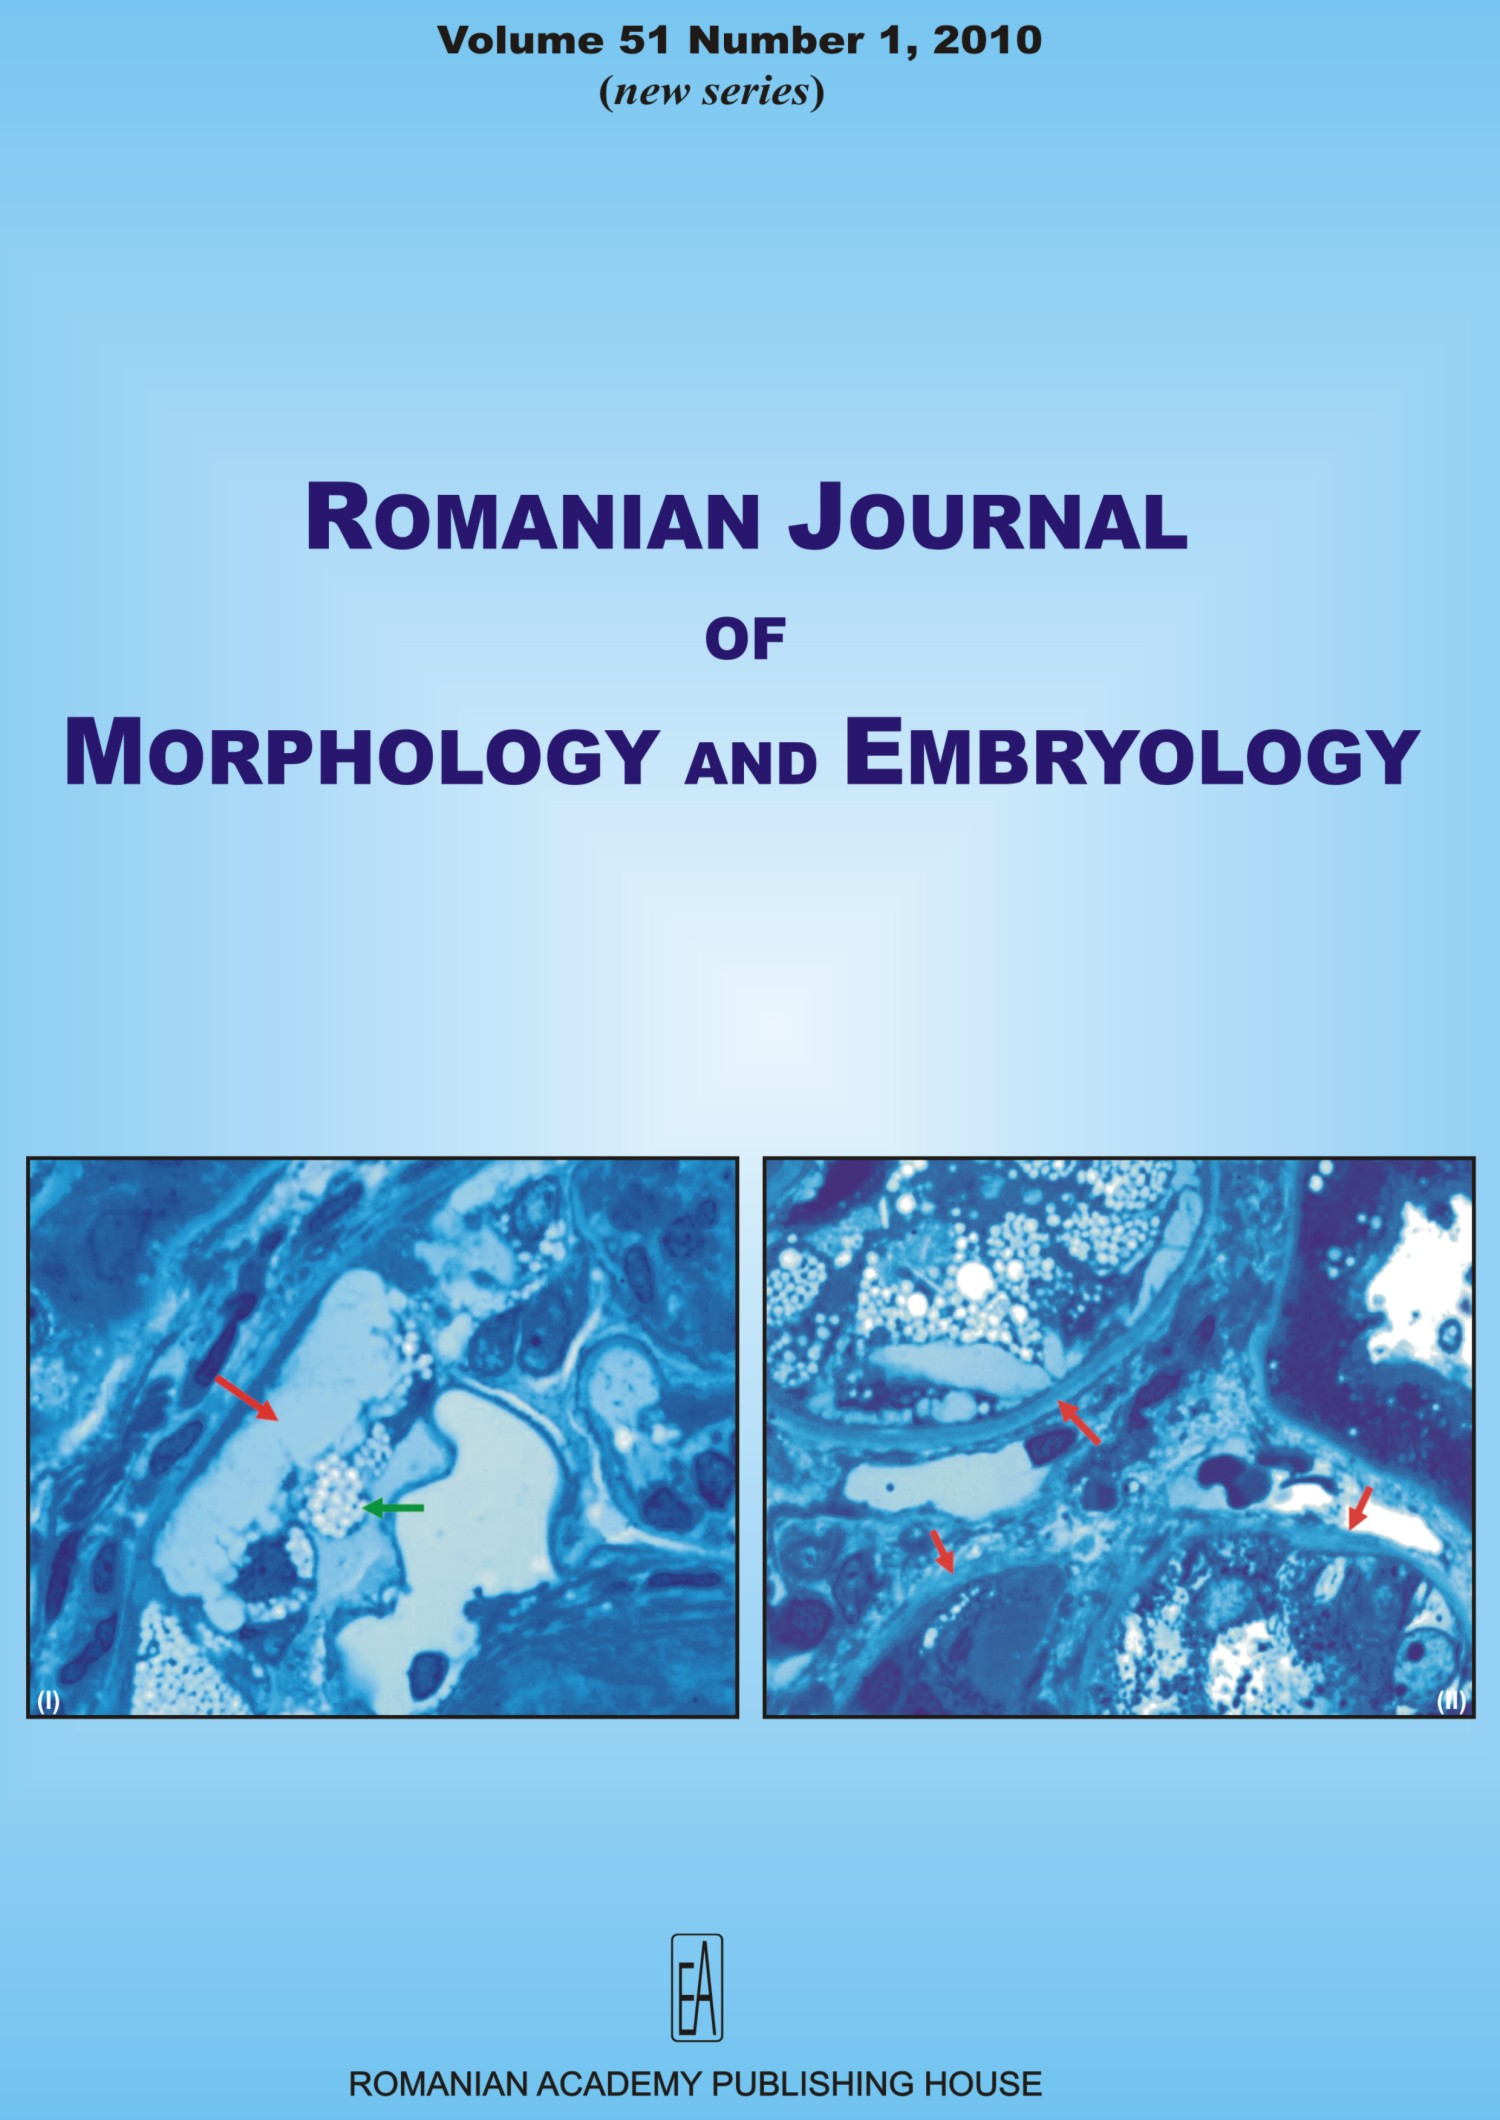 Romanian Journal of Morphology and Embryology, vol. 51 no. 1, 2010